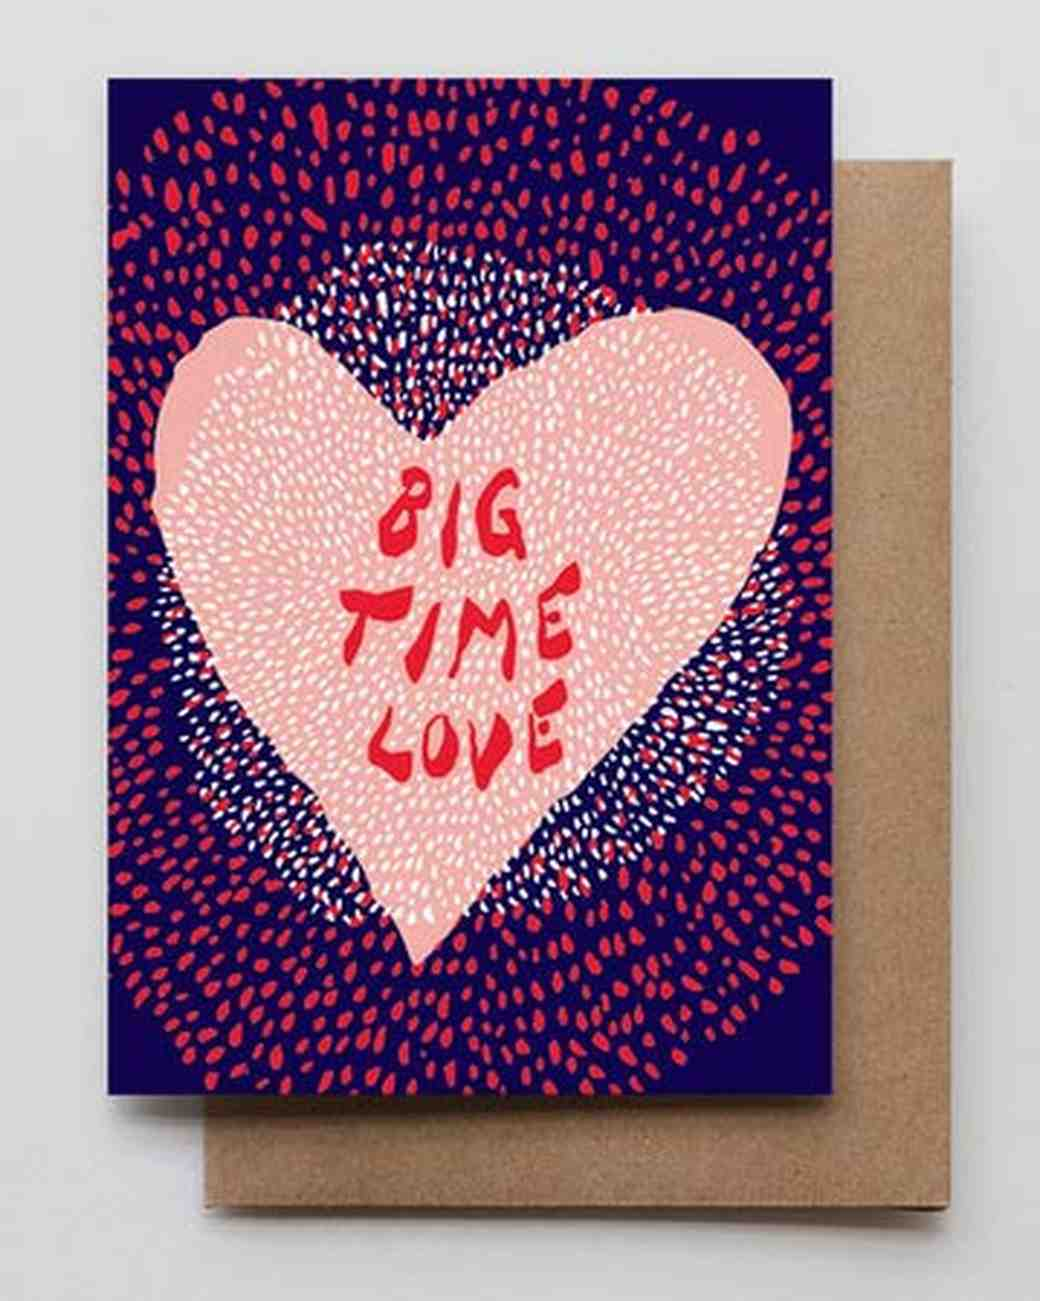 vday-cards-we-love-hammer-press-big-time-love-0216.jpg